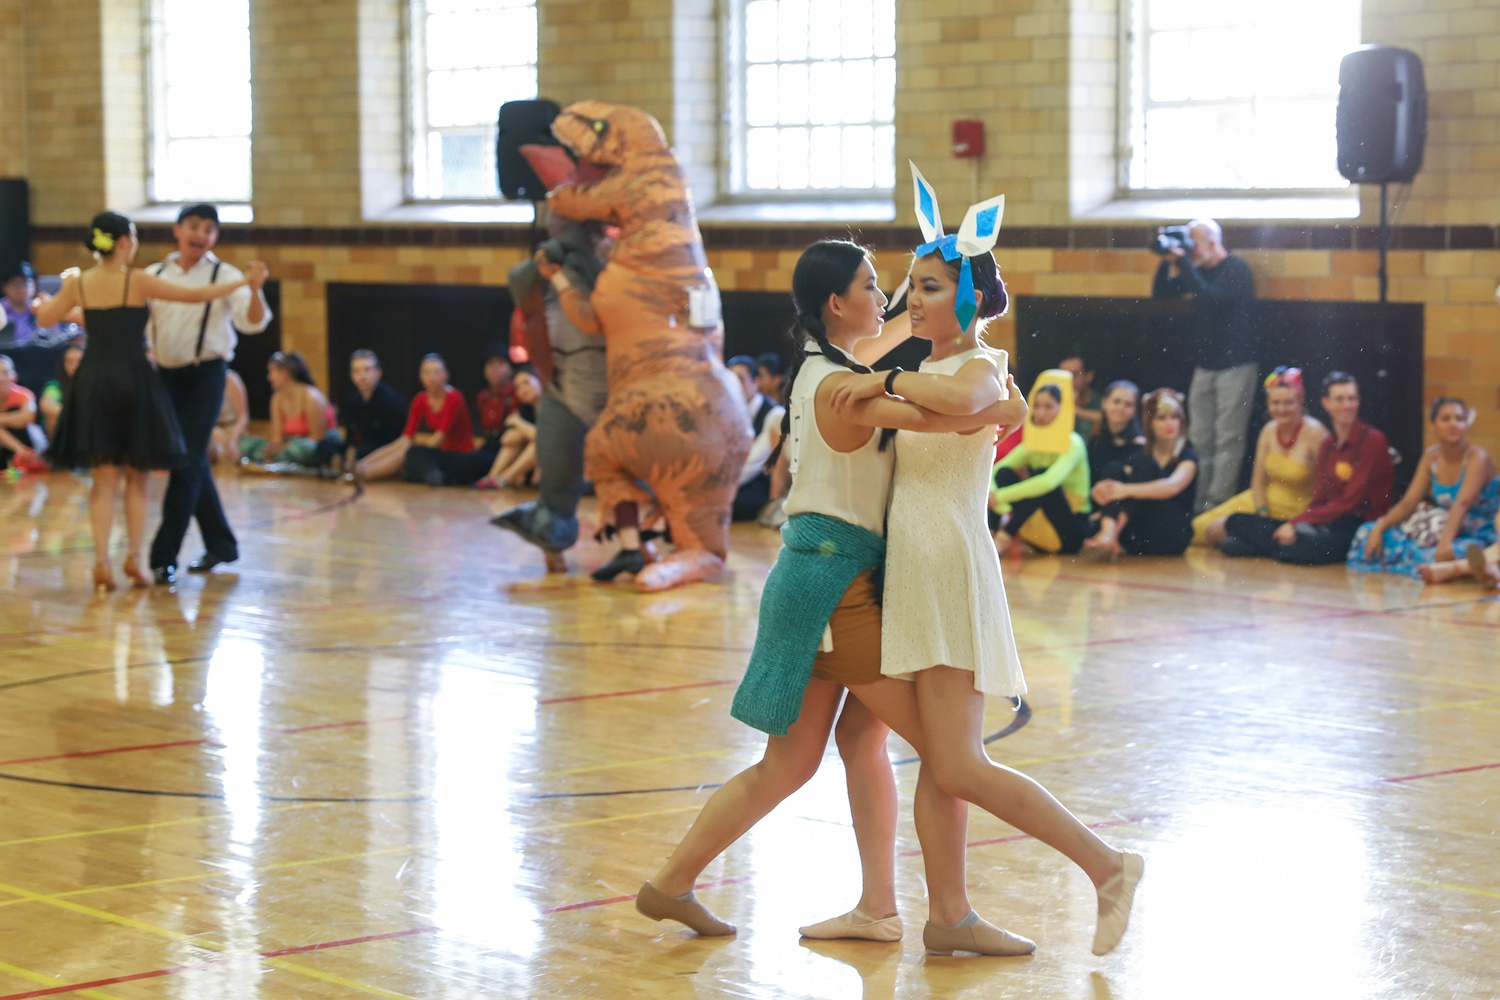 At the Harvard Beginners ballroom competition, dancers could compete in four categories: Rhythm, Latin, Smooth, and Standard.